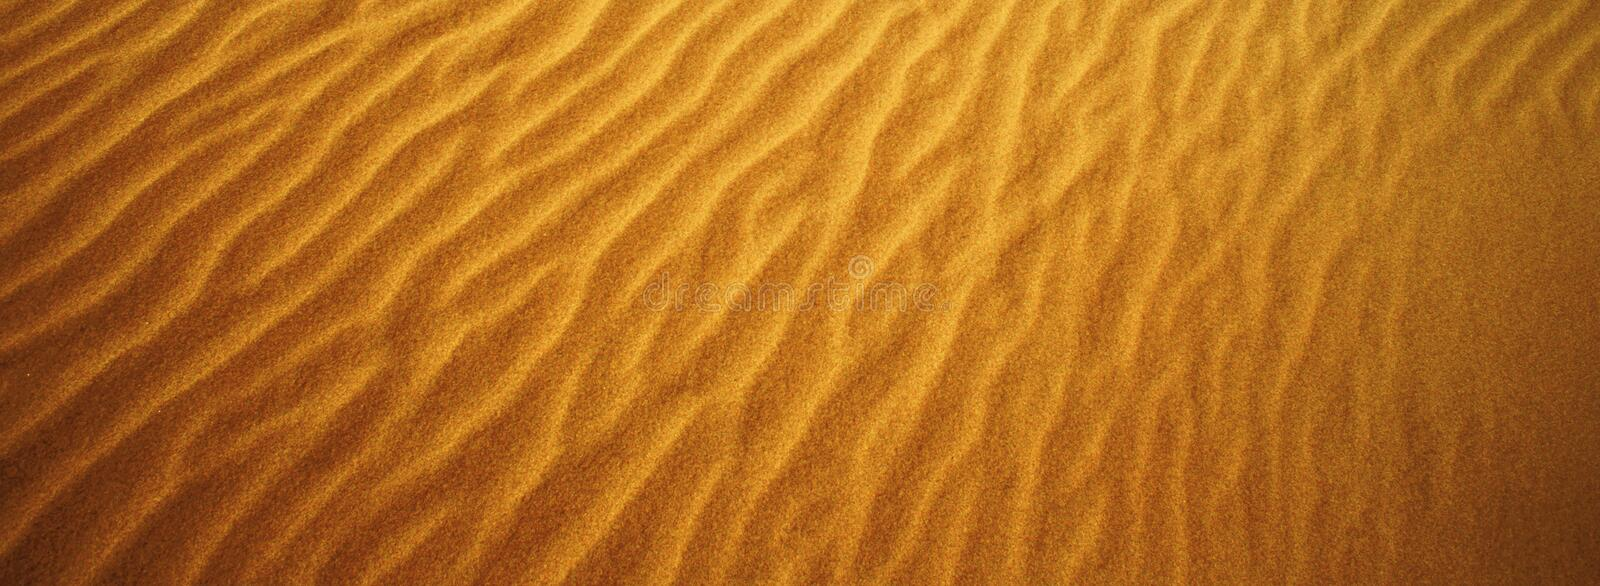 Fond de texture de sable photographie stock